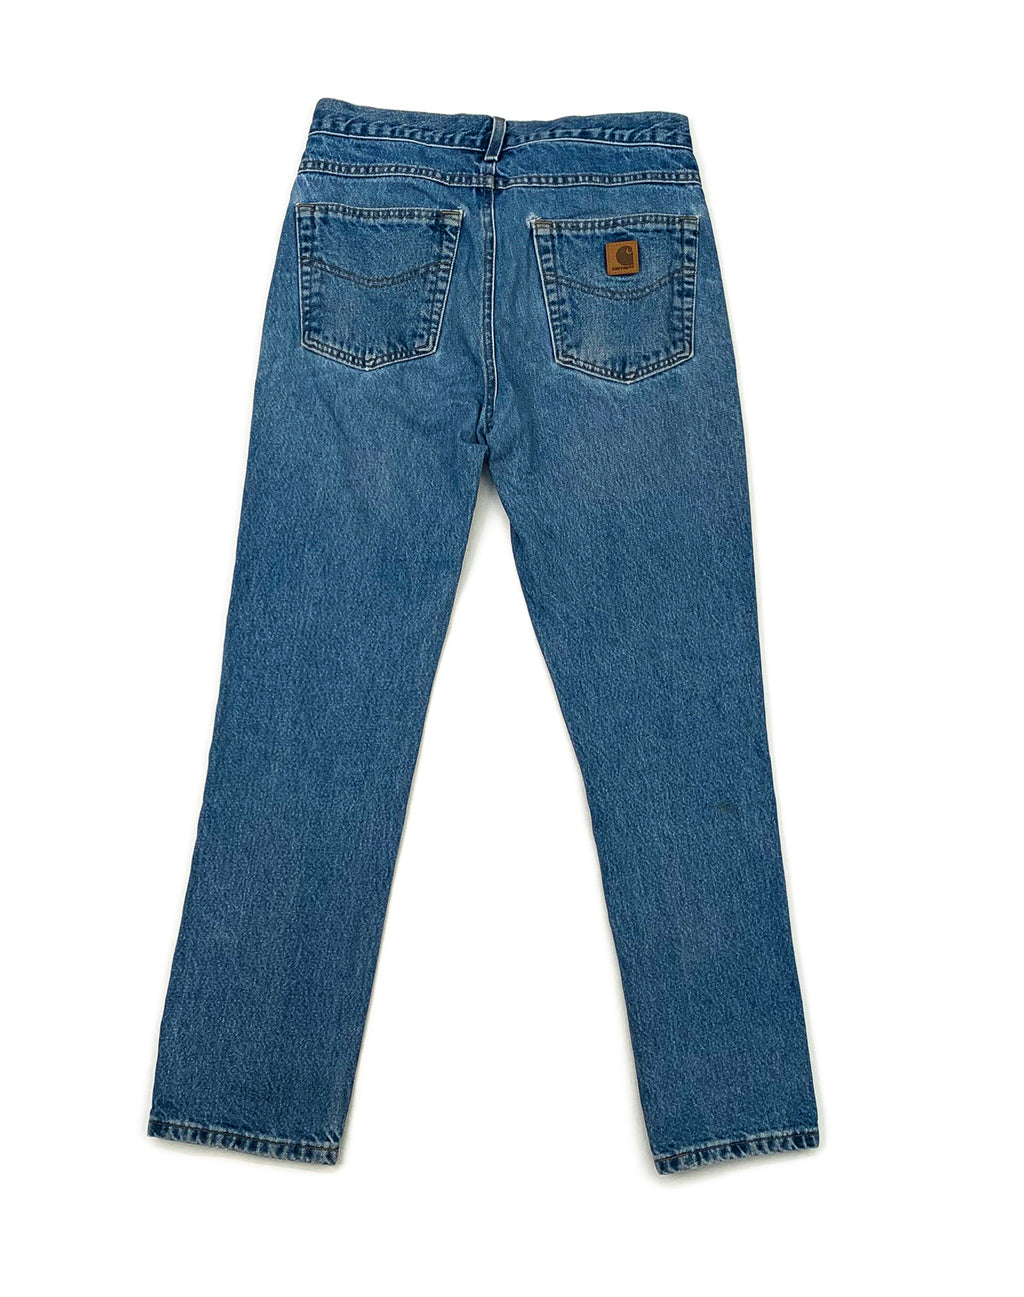 CARHARTT MID-BLUE DENIM JEANS